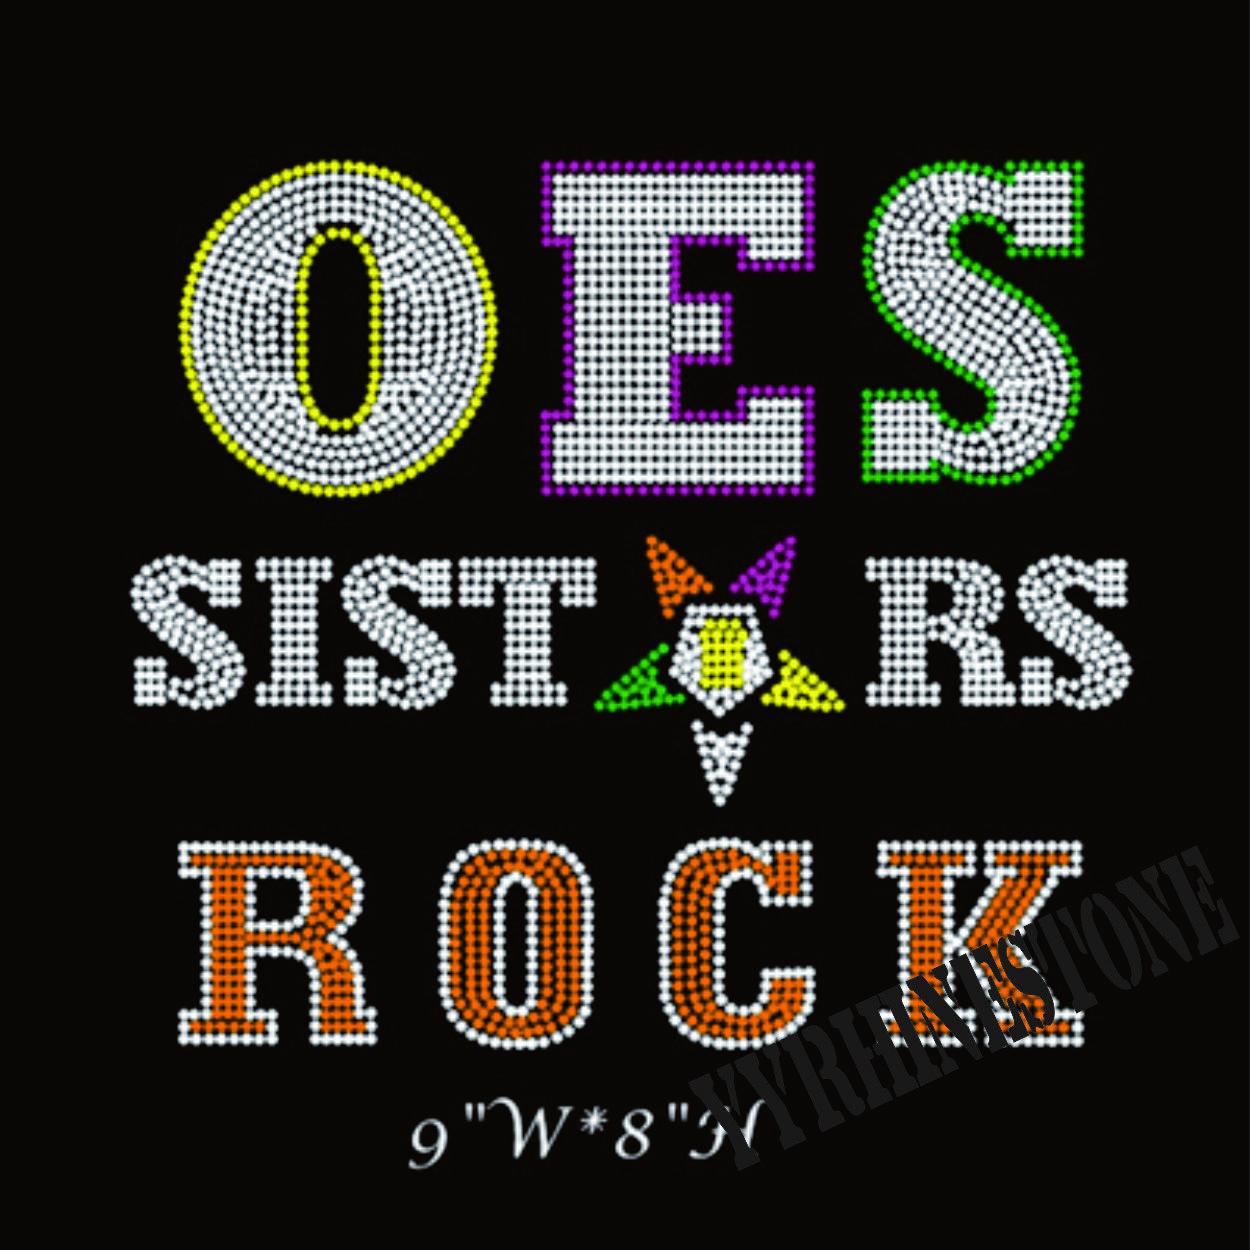 OES SISTAR ROCK hotfix rhinestone transfer motif for t-shirt